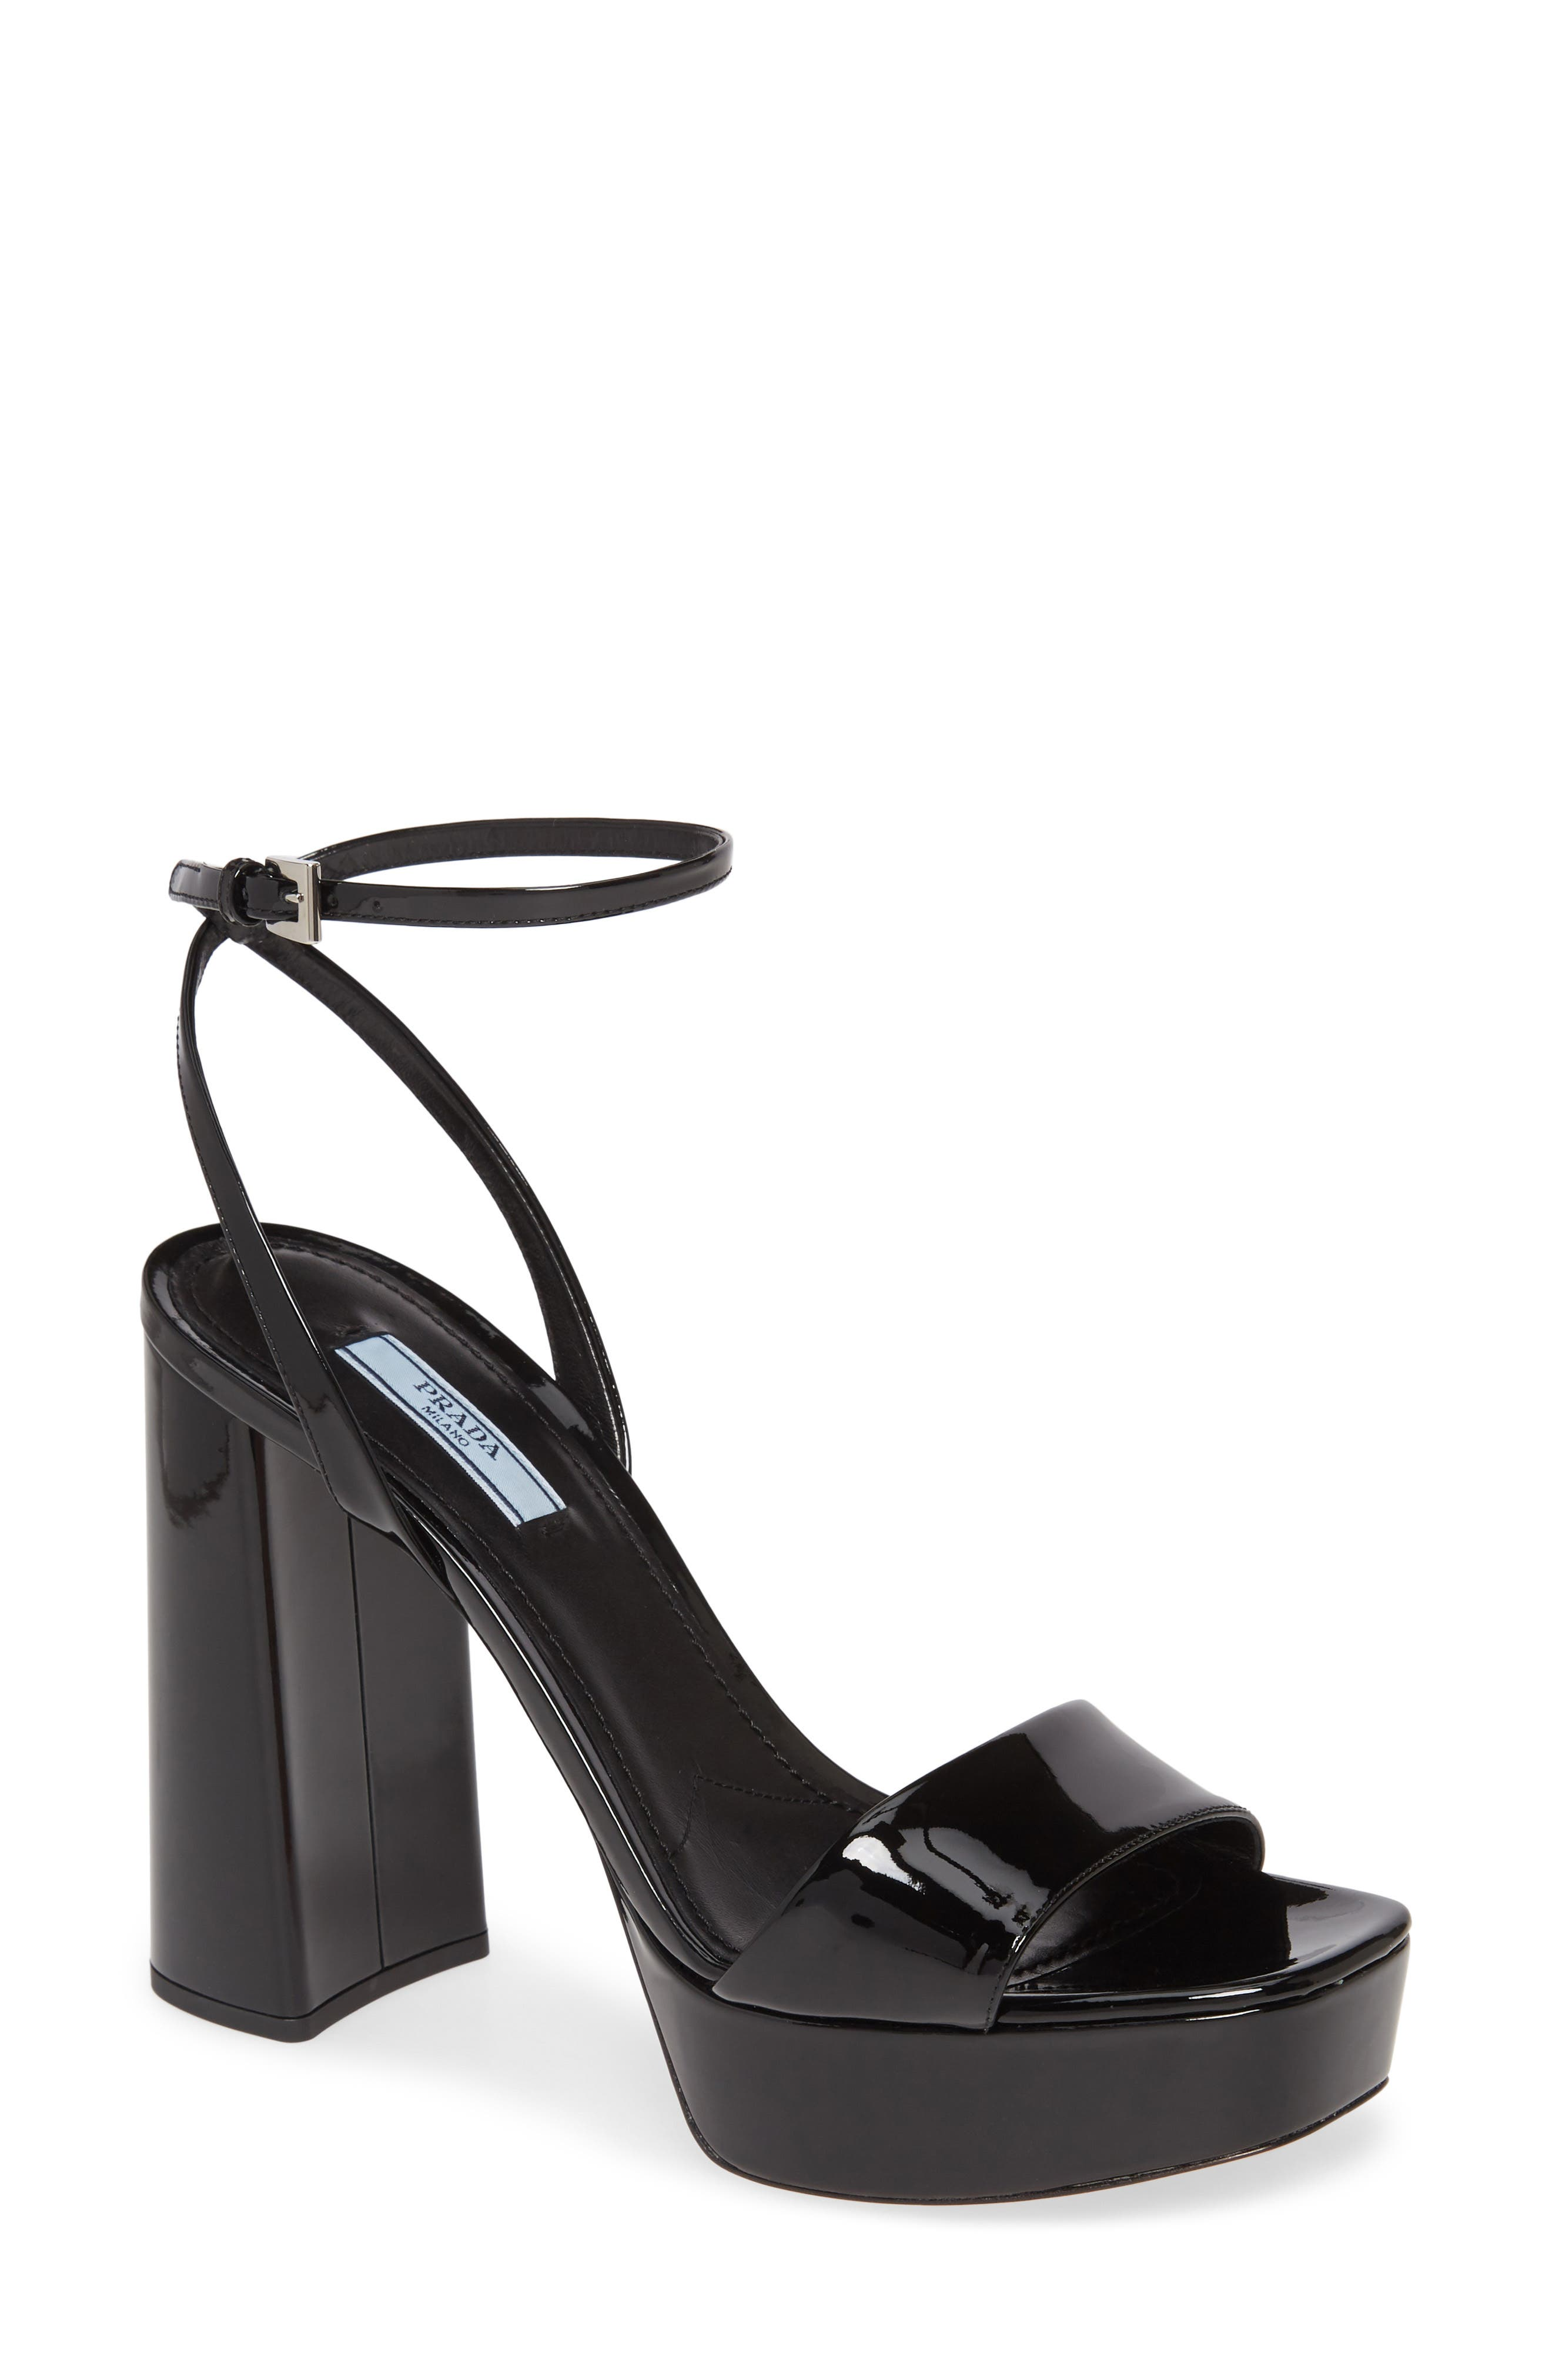 A skyhigh block heel and platform elevate the vintage-inspired vibe of a patent-lambskin sandal that pairs a slender wraparound ankle strap with a blunted toe. Style Name: Prada Ankle Strap Platform Sandal (Women) (Nordstrom Exclusive). Style Number: 5955913. Available in stores.